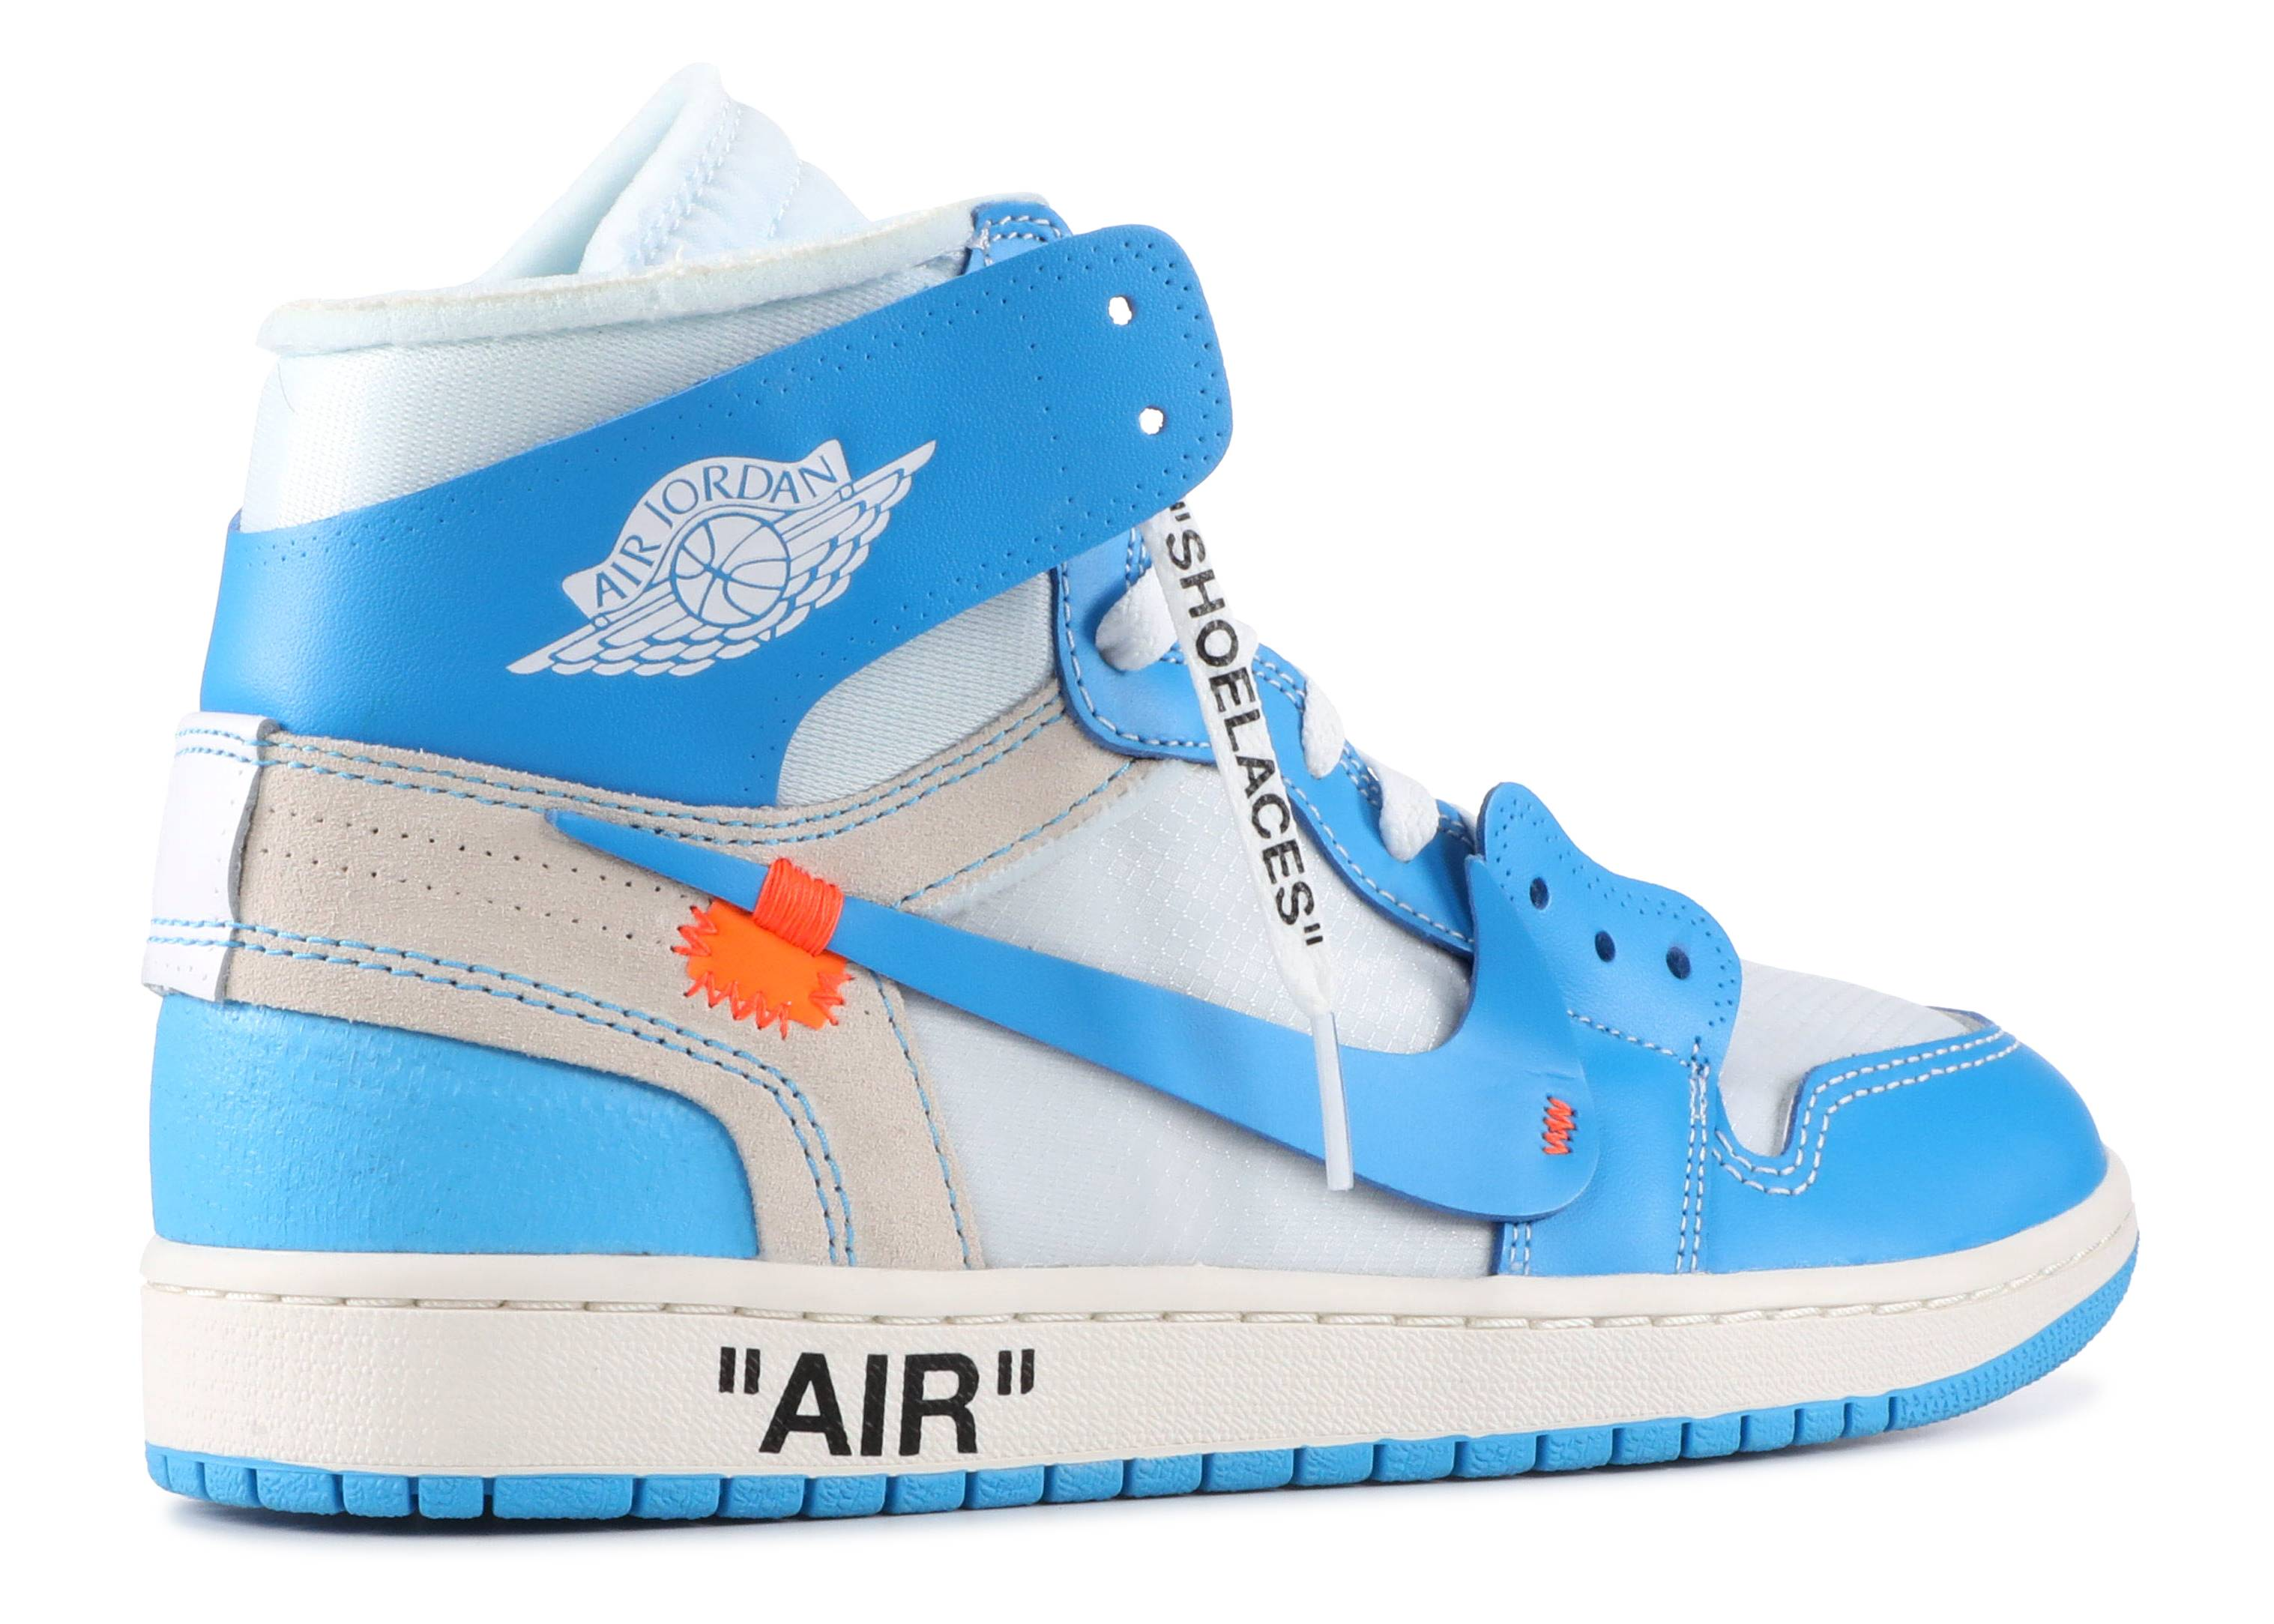 Jordan 1 Retro High Off-white